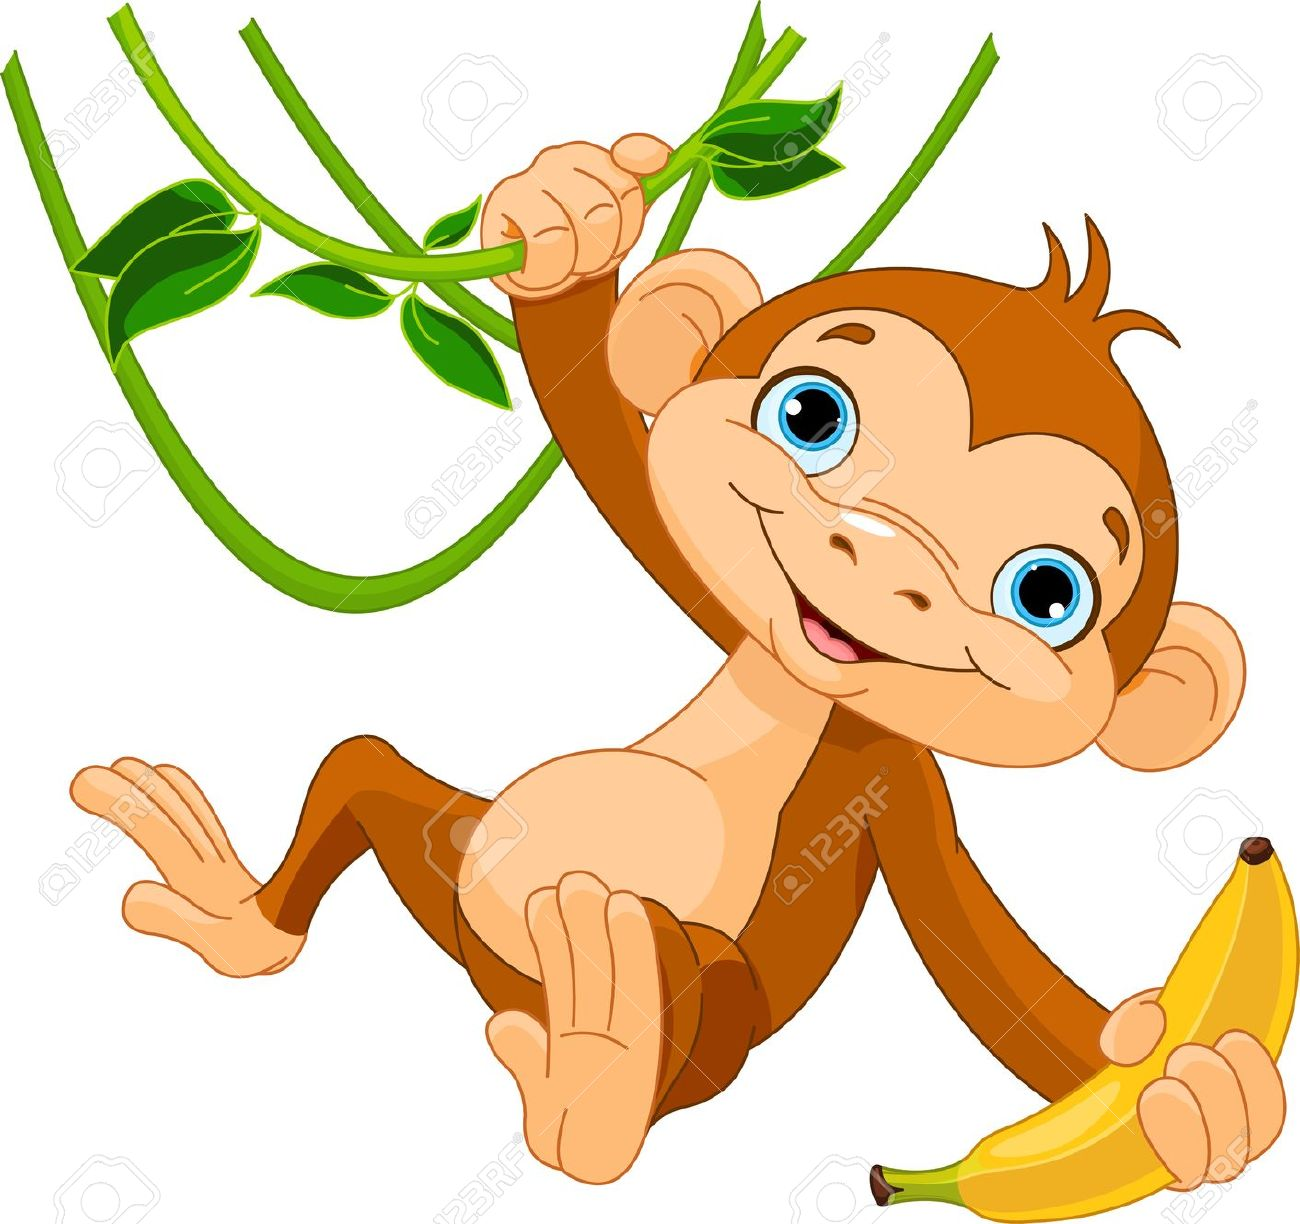 Type of monkey clipart #5